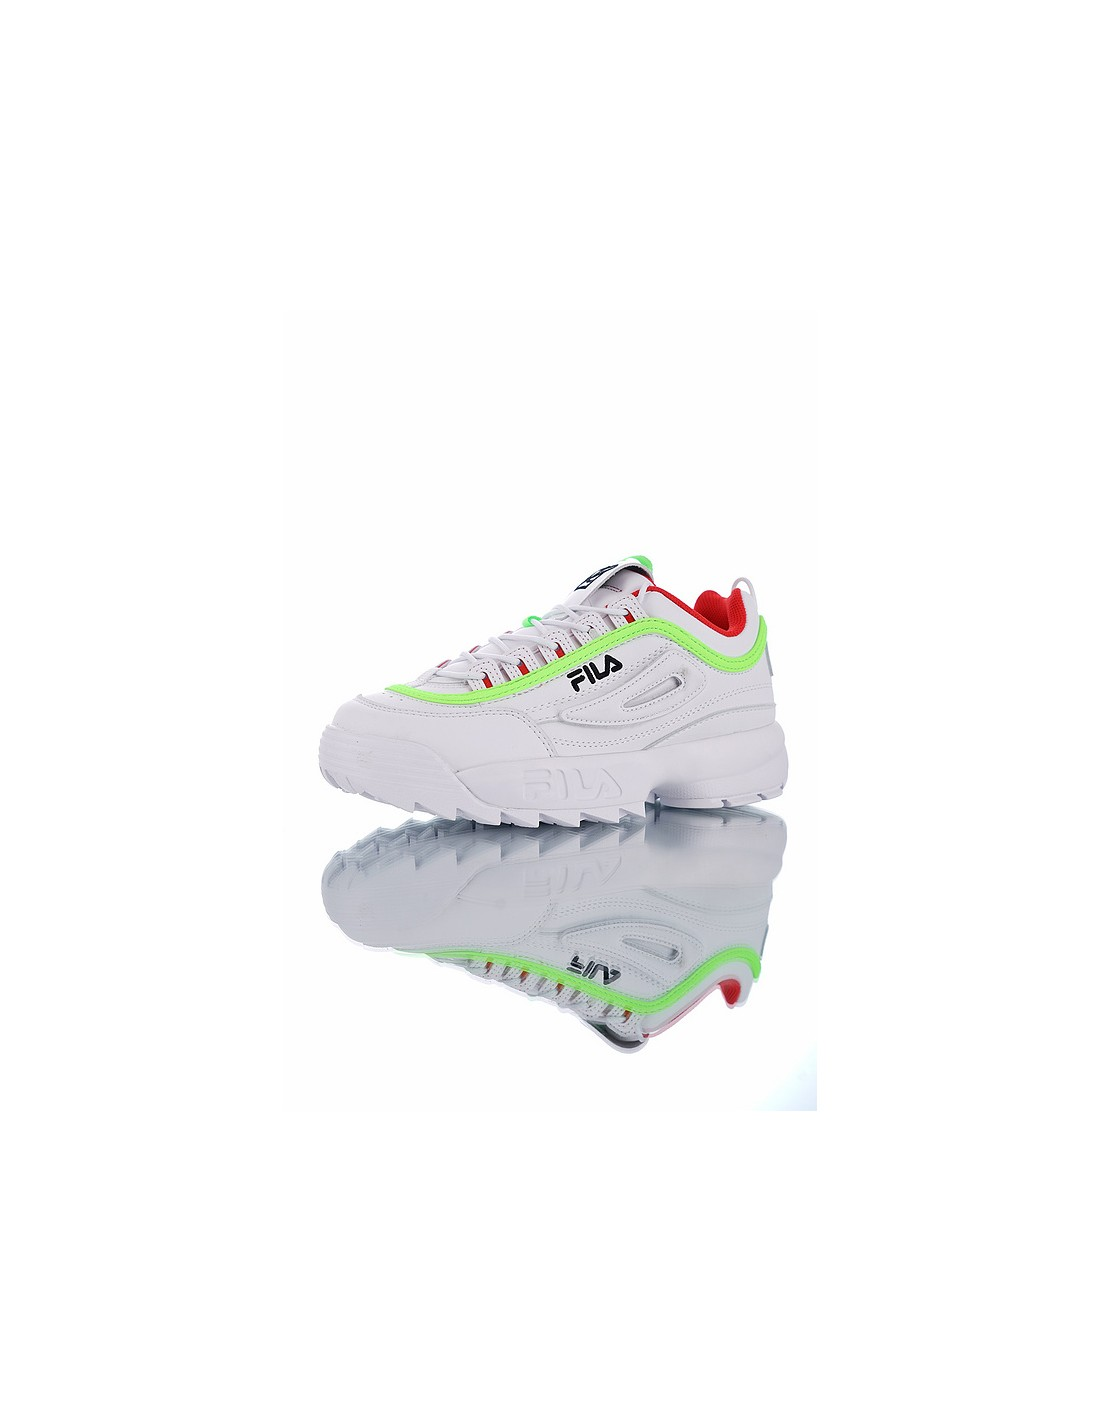 Fila Disruptor II x Roy Wang Women's Shoe